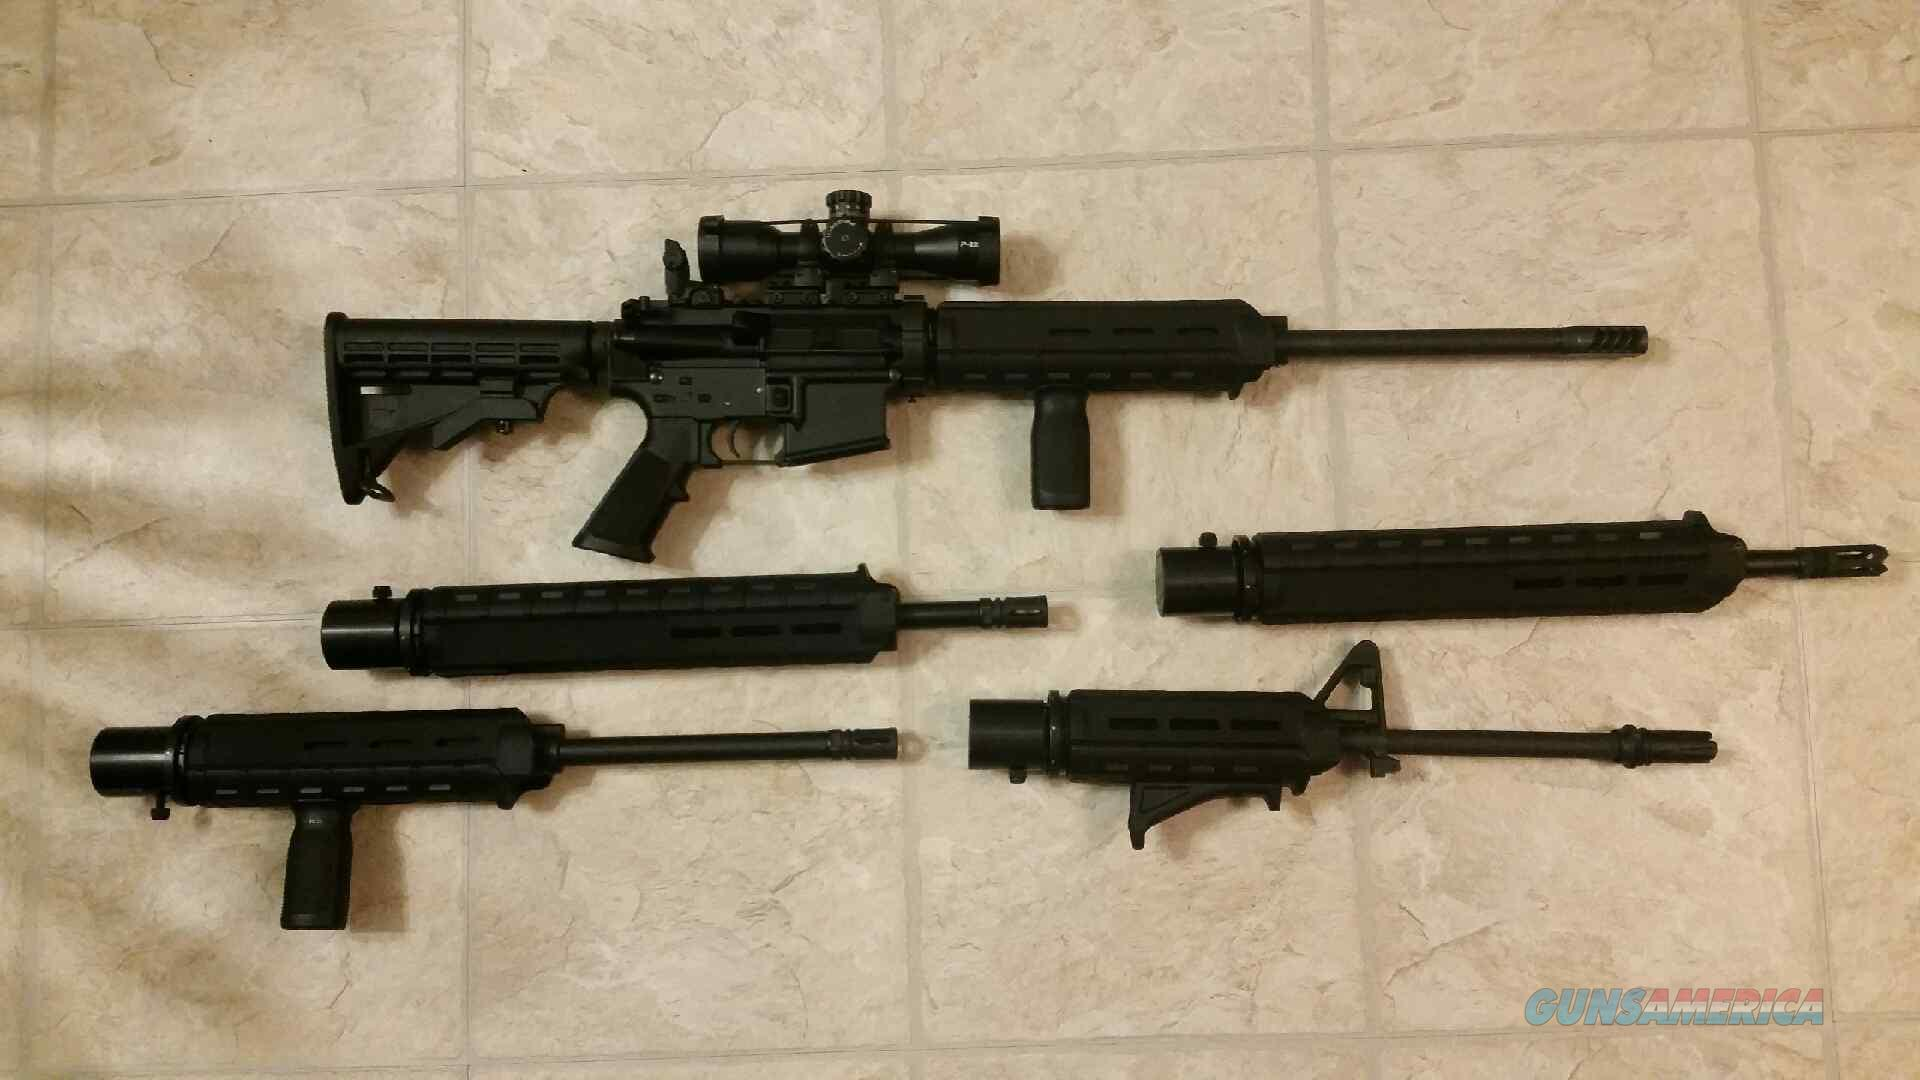 REDUCED!! Frontier Tactical Warlock AR /w 5 barrels  Guns > Rifles > AR-15 Rifles - Small Manufacturers > Complete Rifle